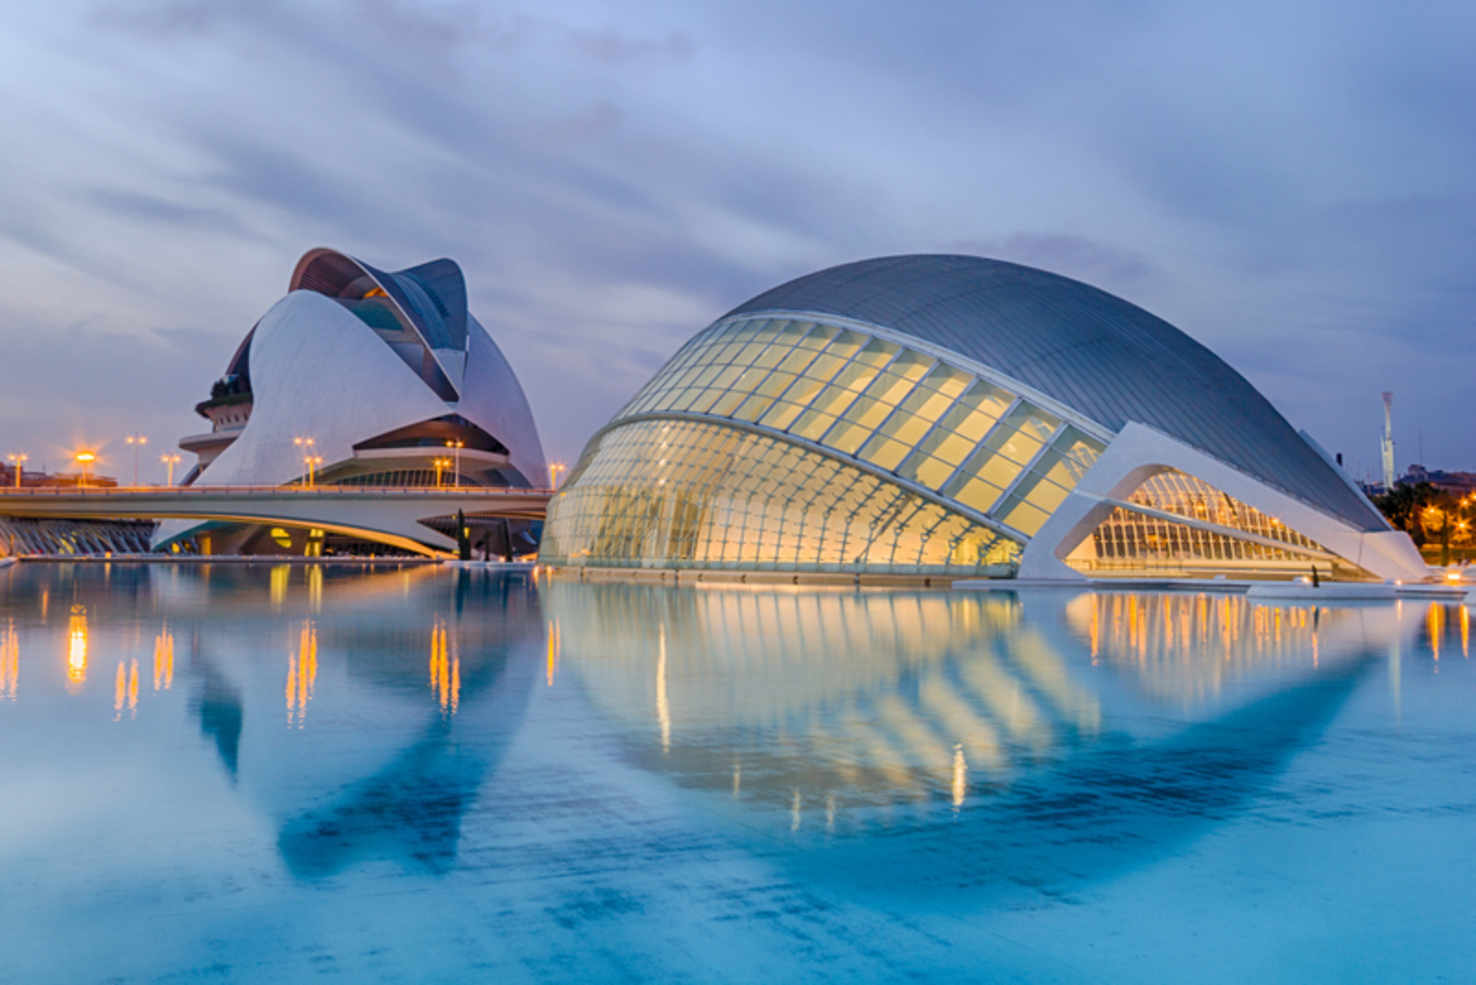 Large city of arts in valencia spain